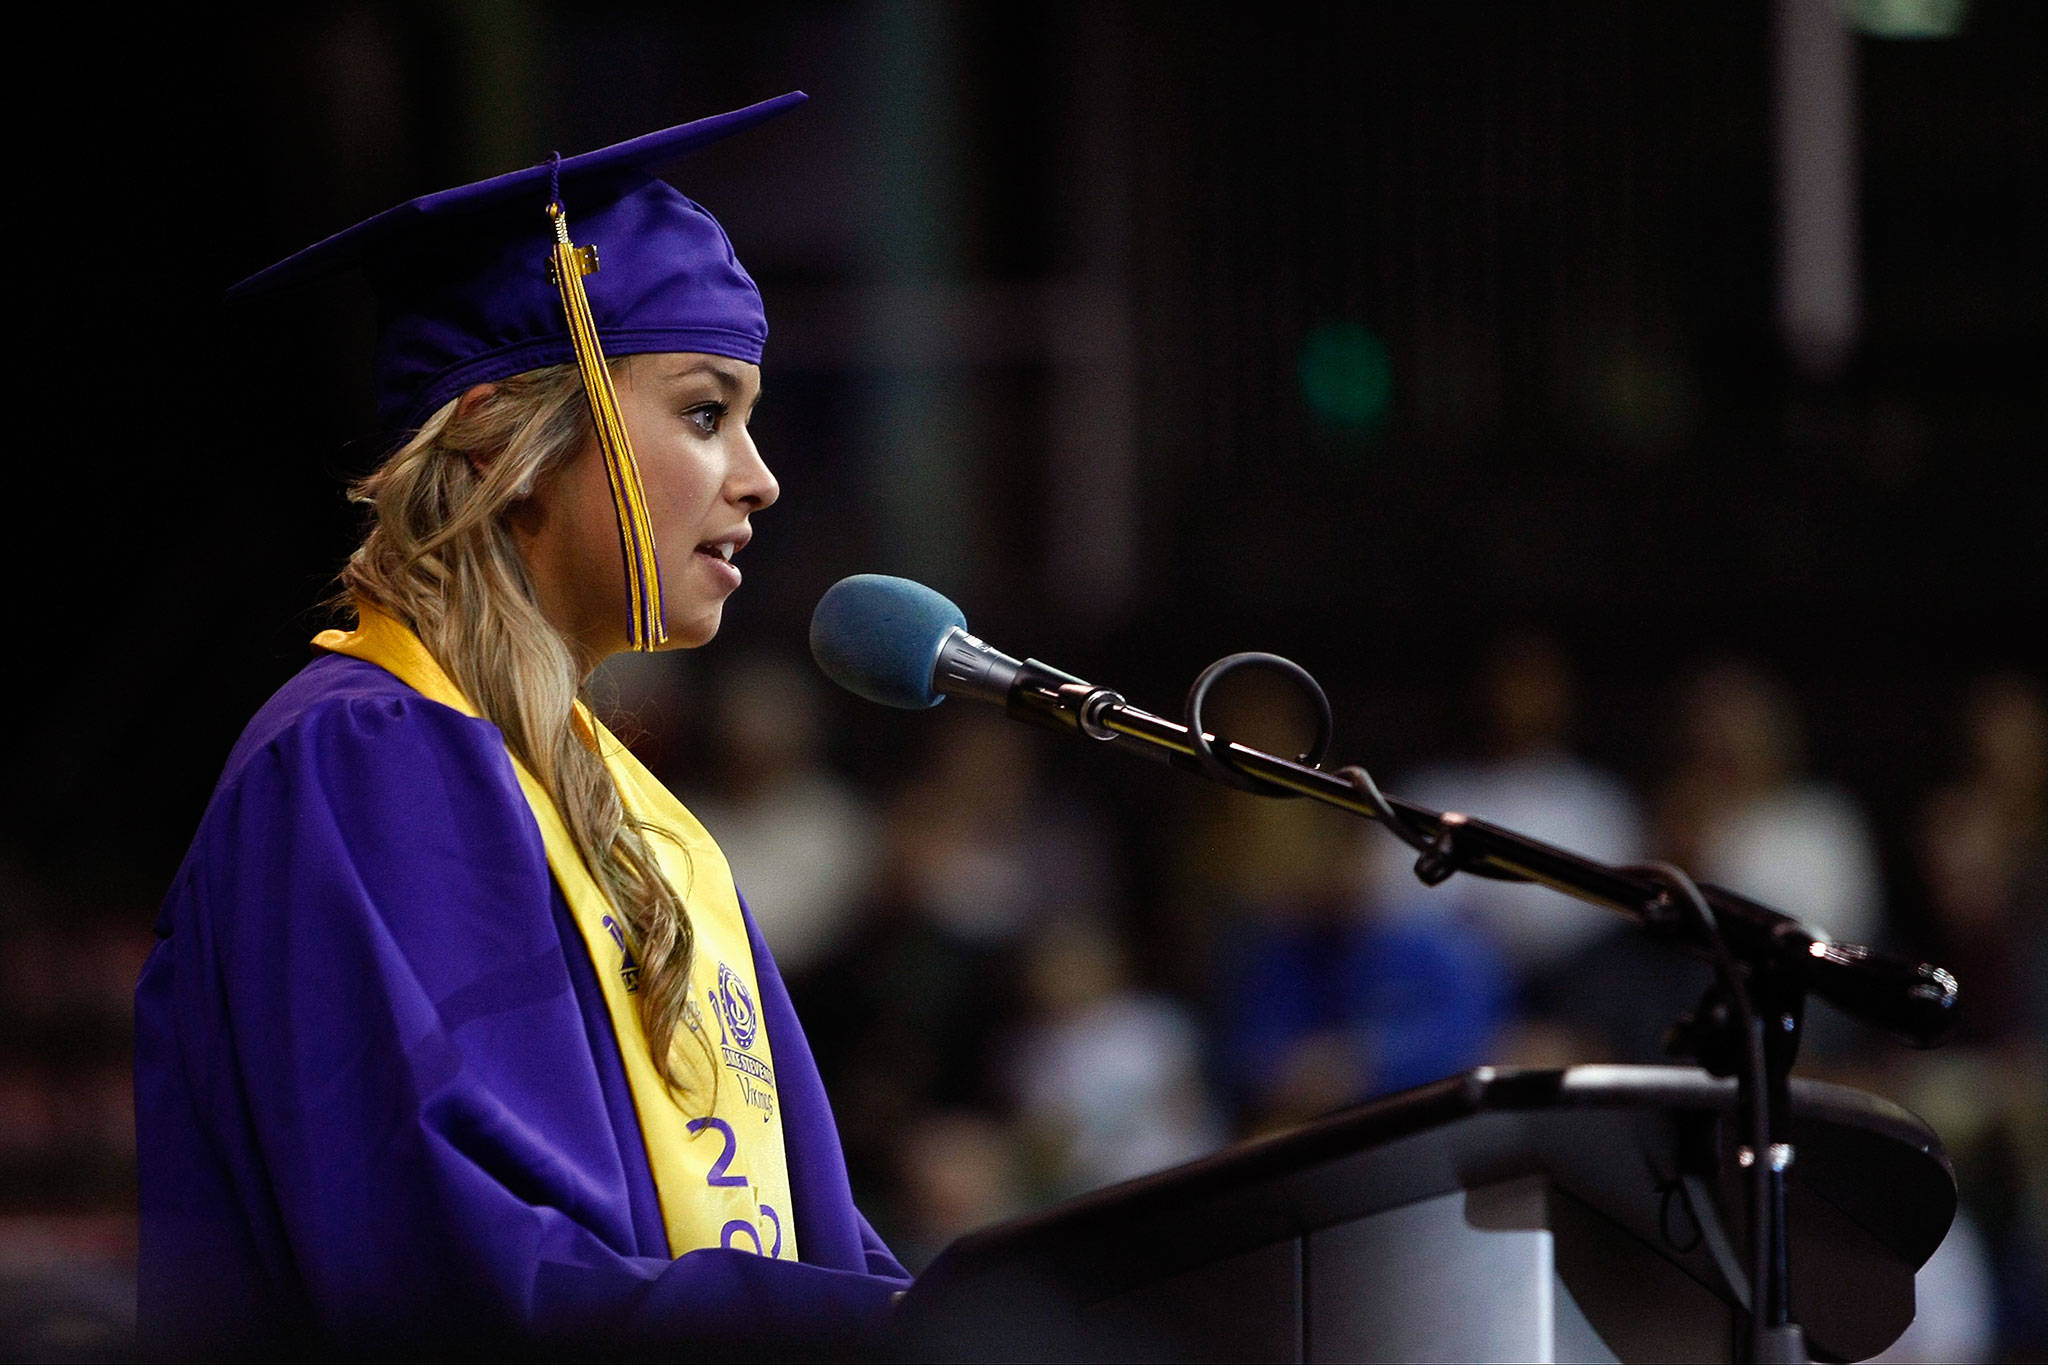 Ivy Jacobsen, now a Bothell police officer, spoke about being a survivor of sexual abuse at her graduation from Lake Stevens High School in 2014. (Photo by Ian Terry / Herald File)